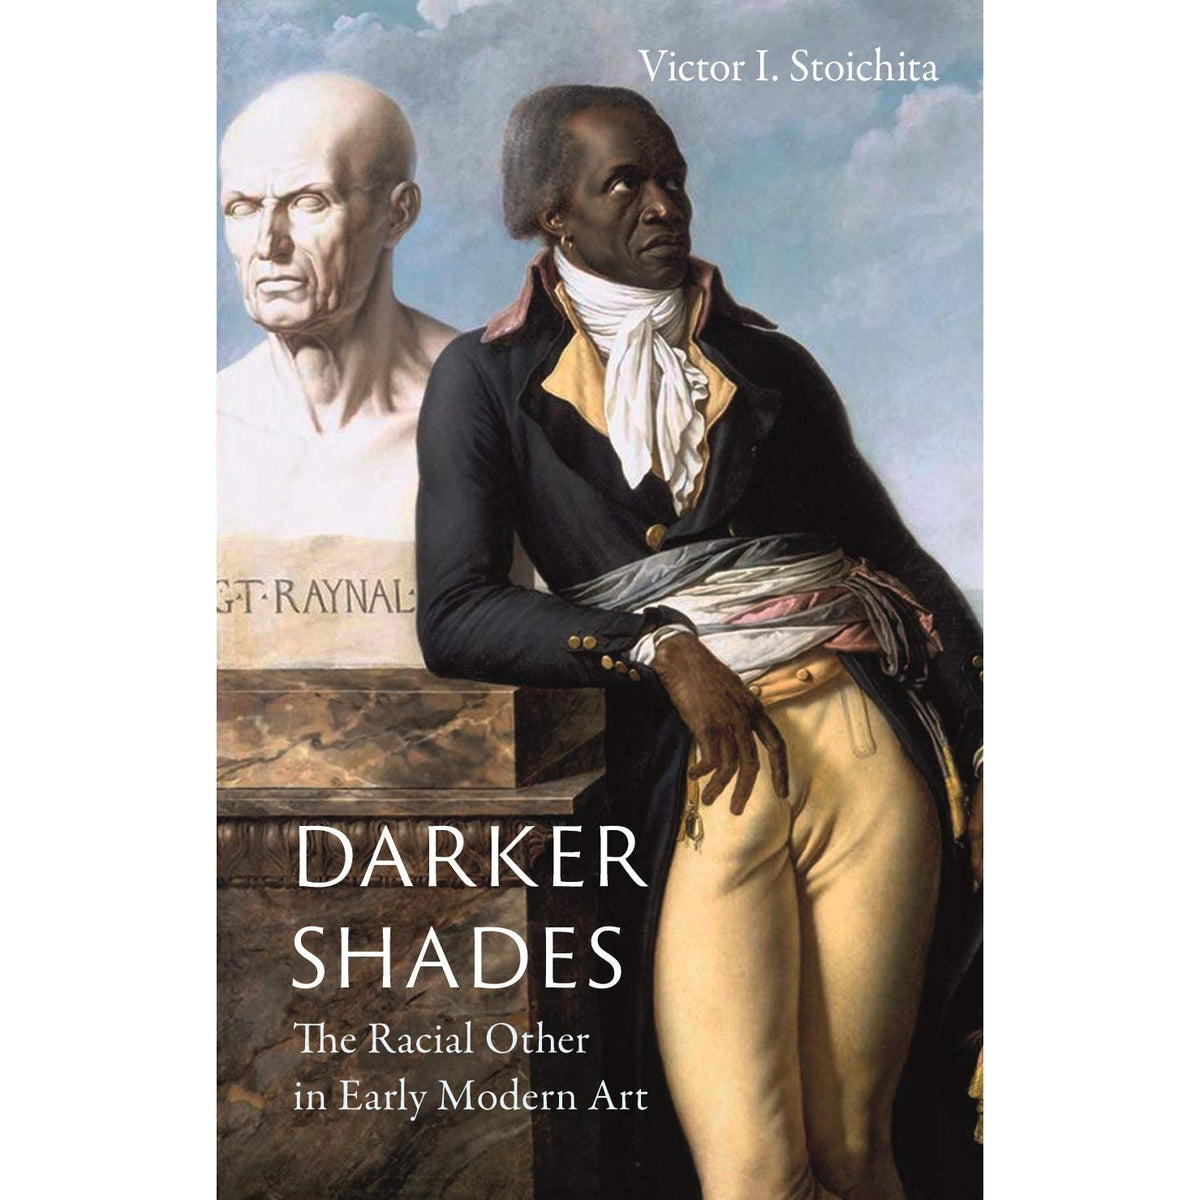 Darker Shades: The Racial Other in Early Modern Art